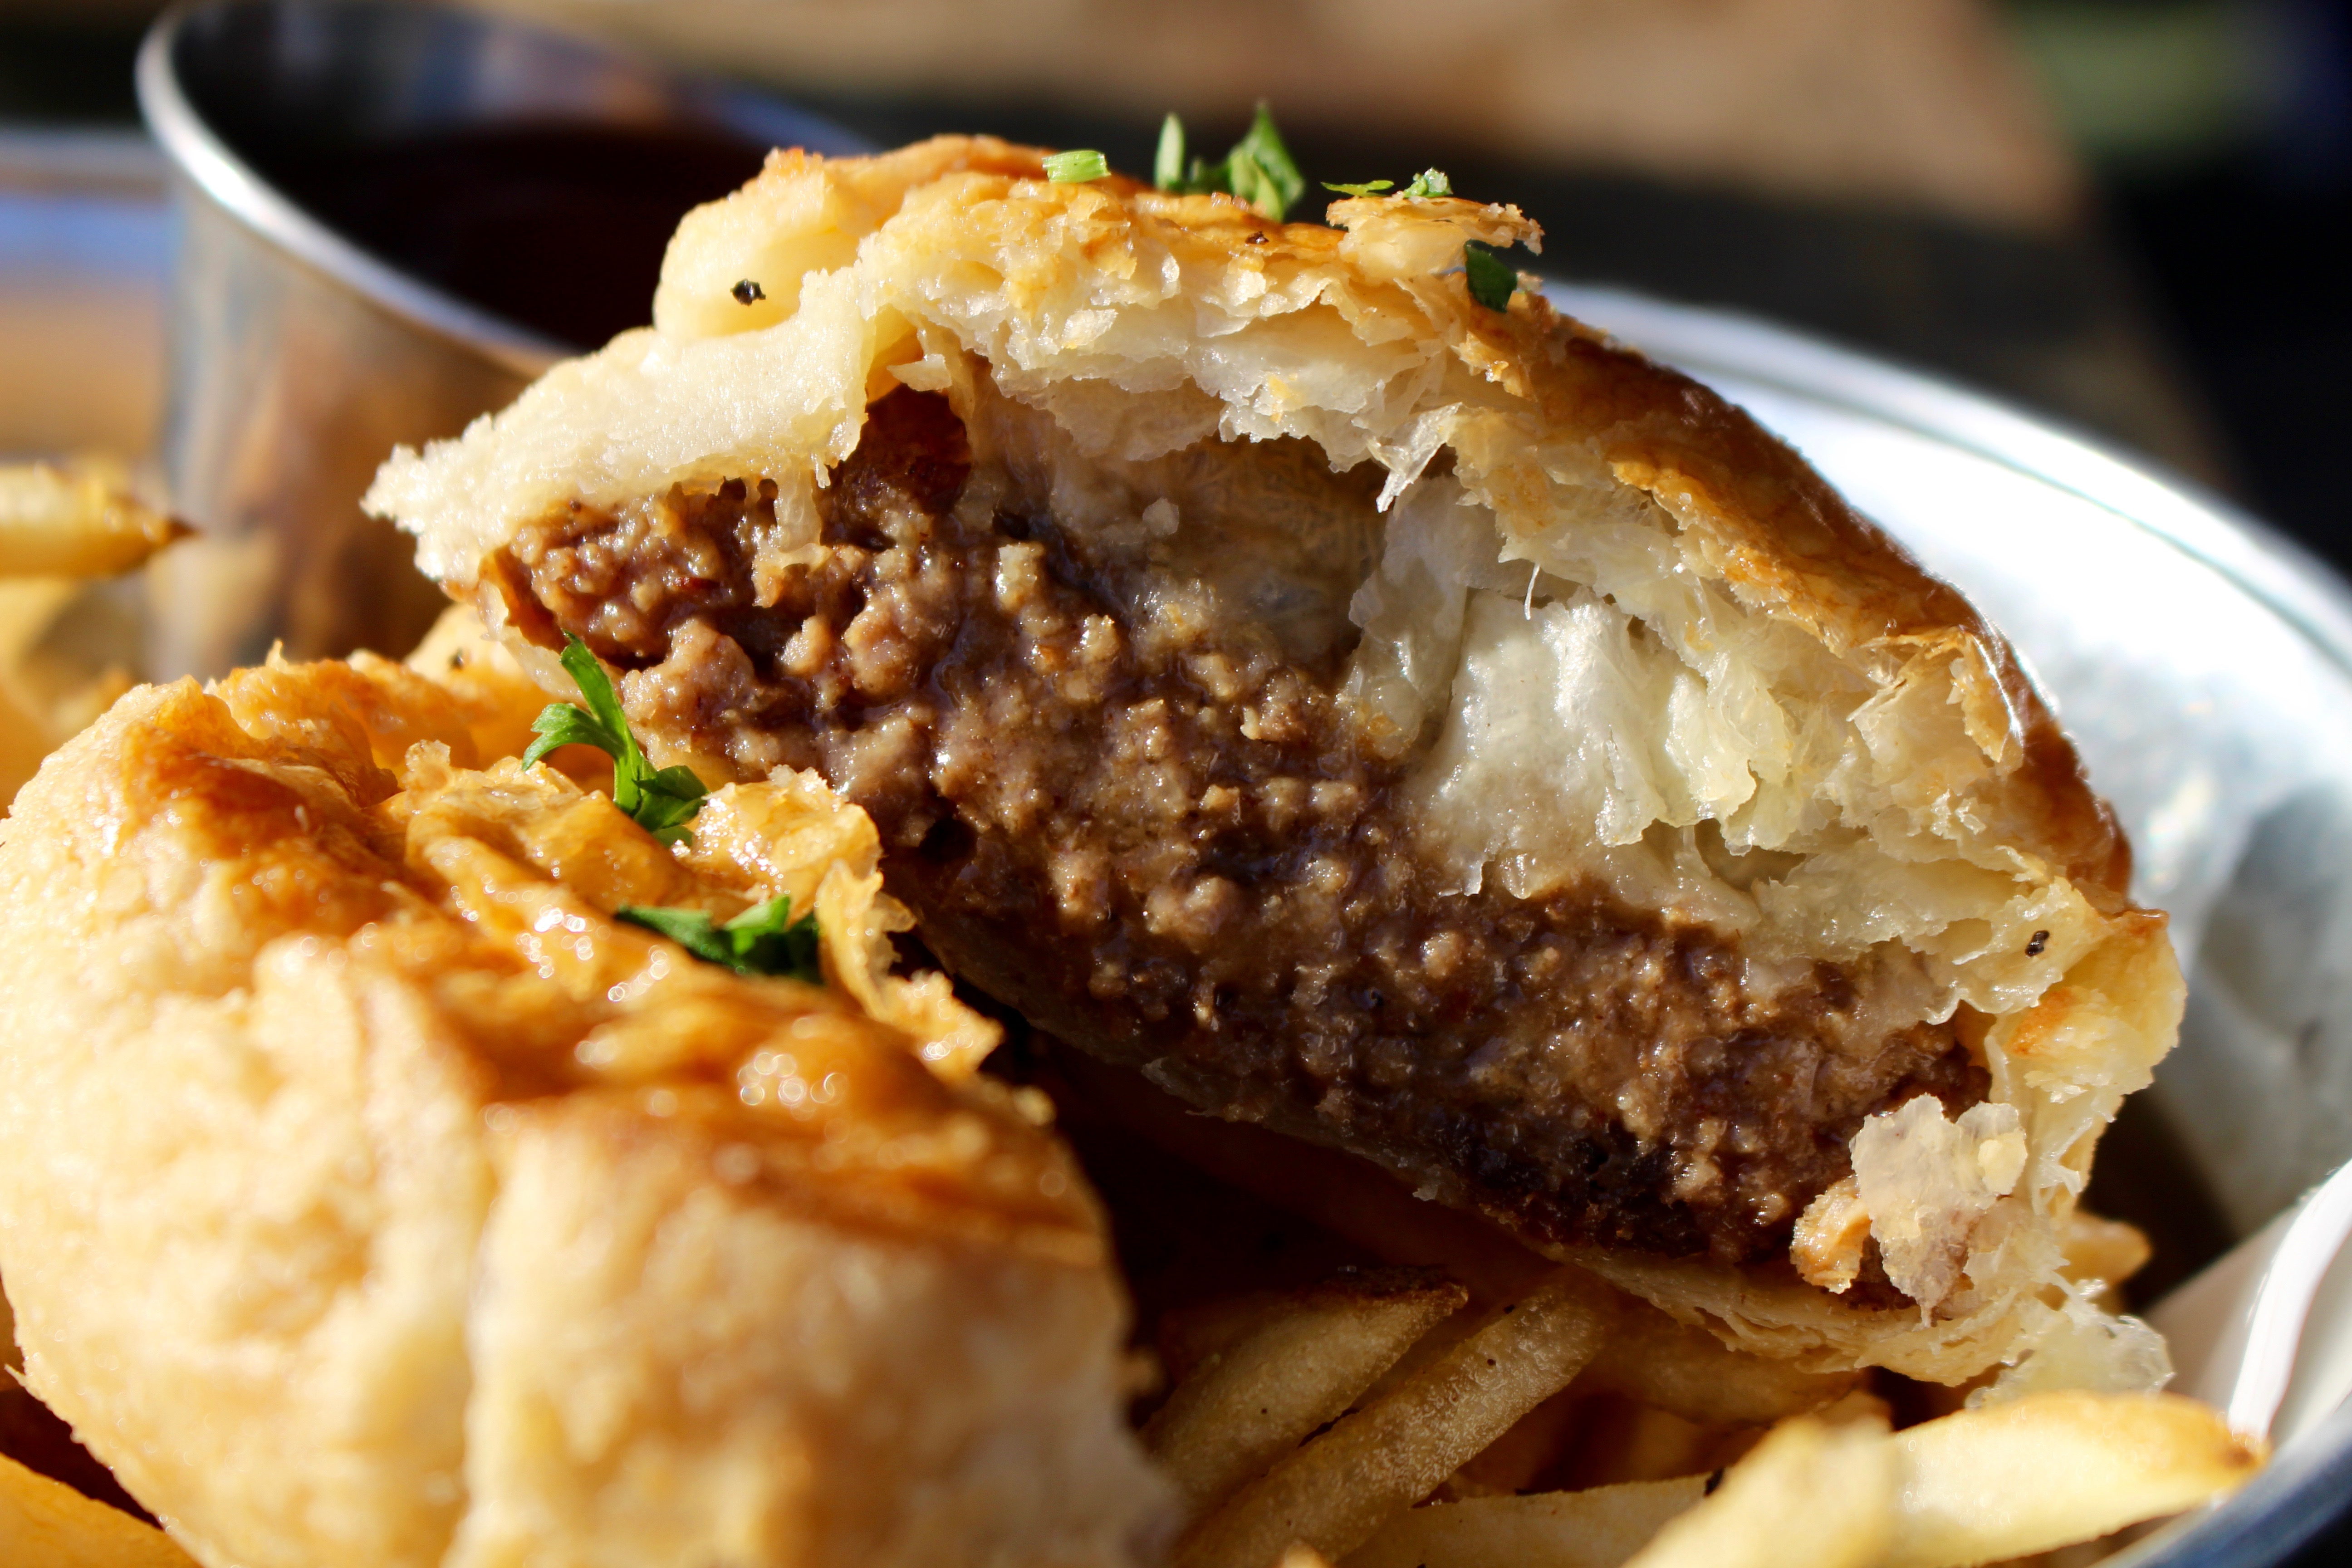 The New Zealand Meat Pie is one of the many offerings found on Dunedin's new menu.